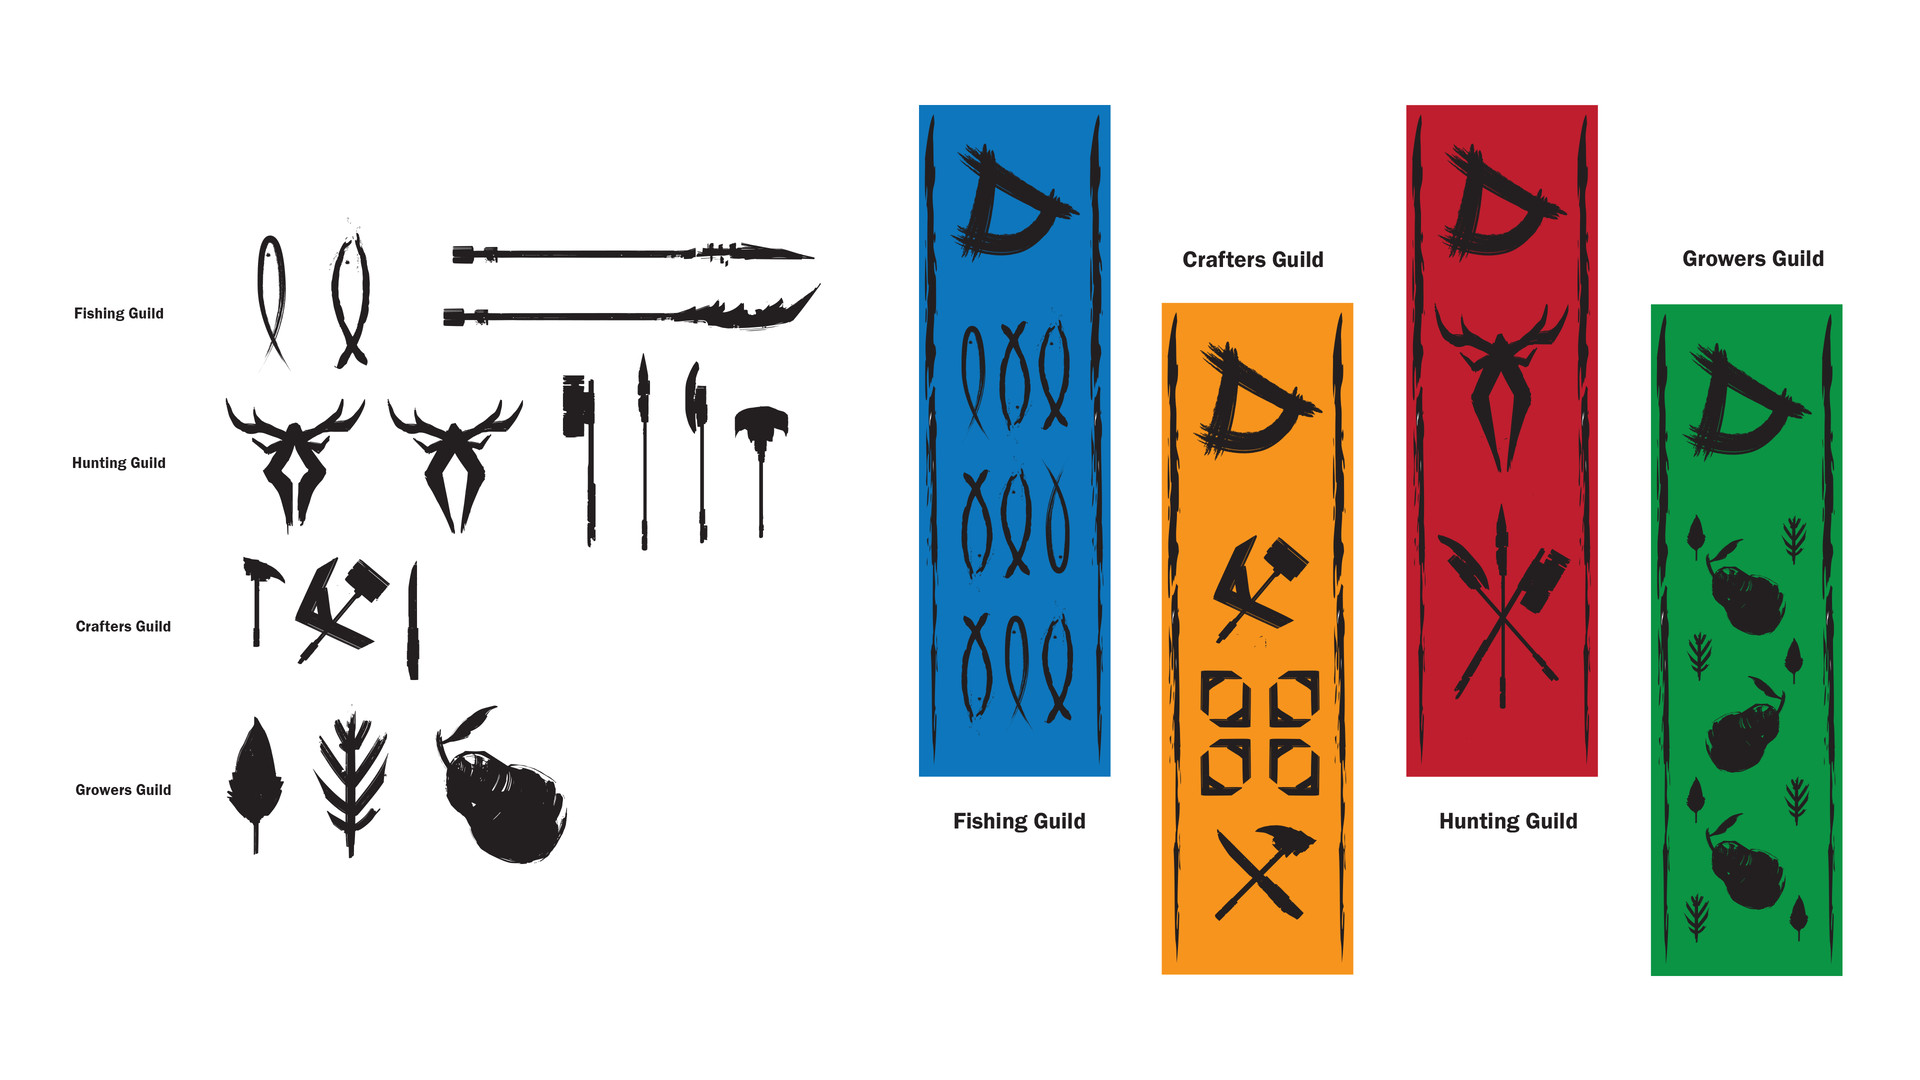 Some concepts for the Guild Flags and symbols